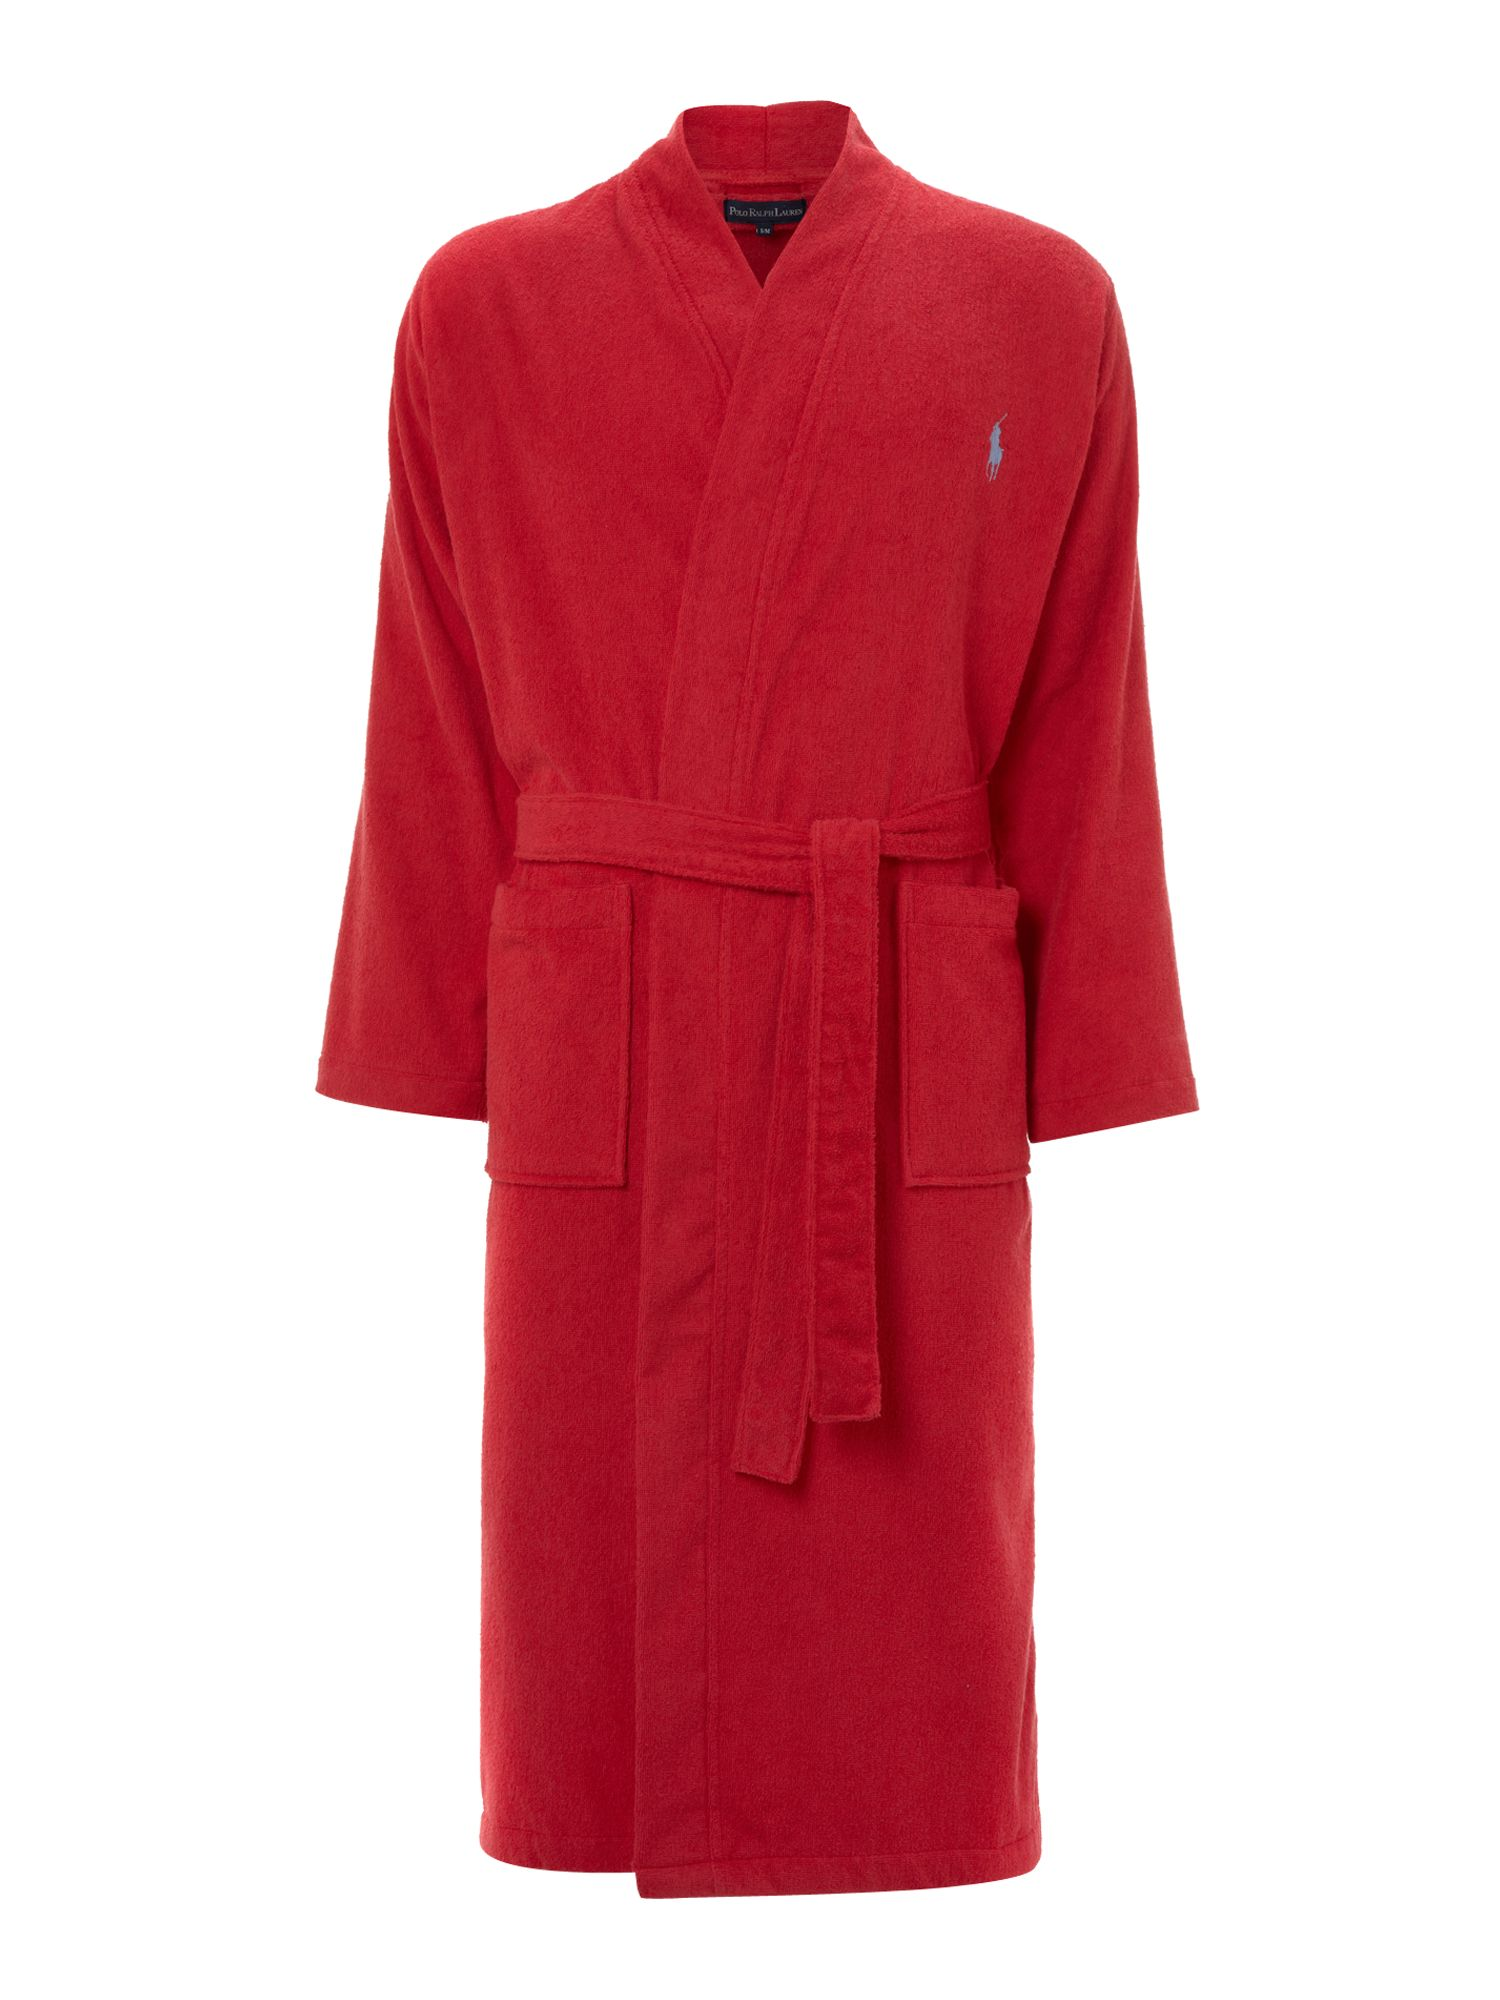 09f4097bf9 Polo Ralph Lauren Terry Night Robe in Red for Men - Lyst